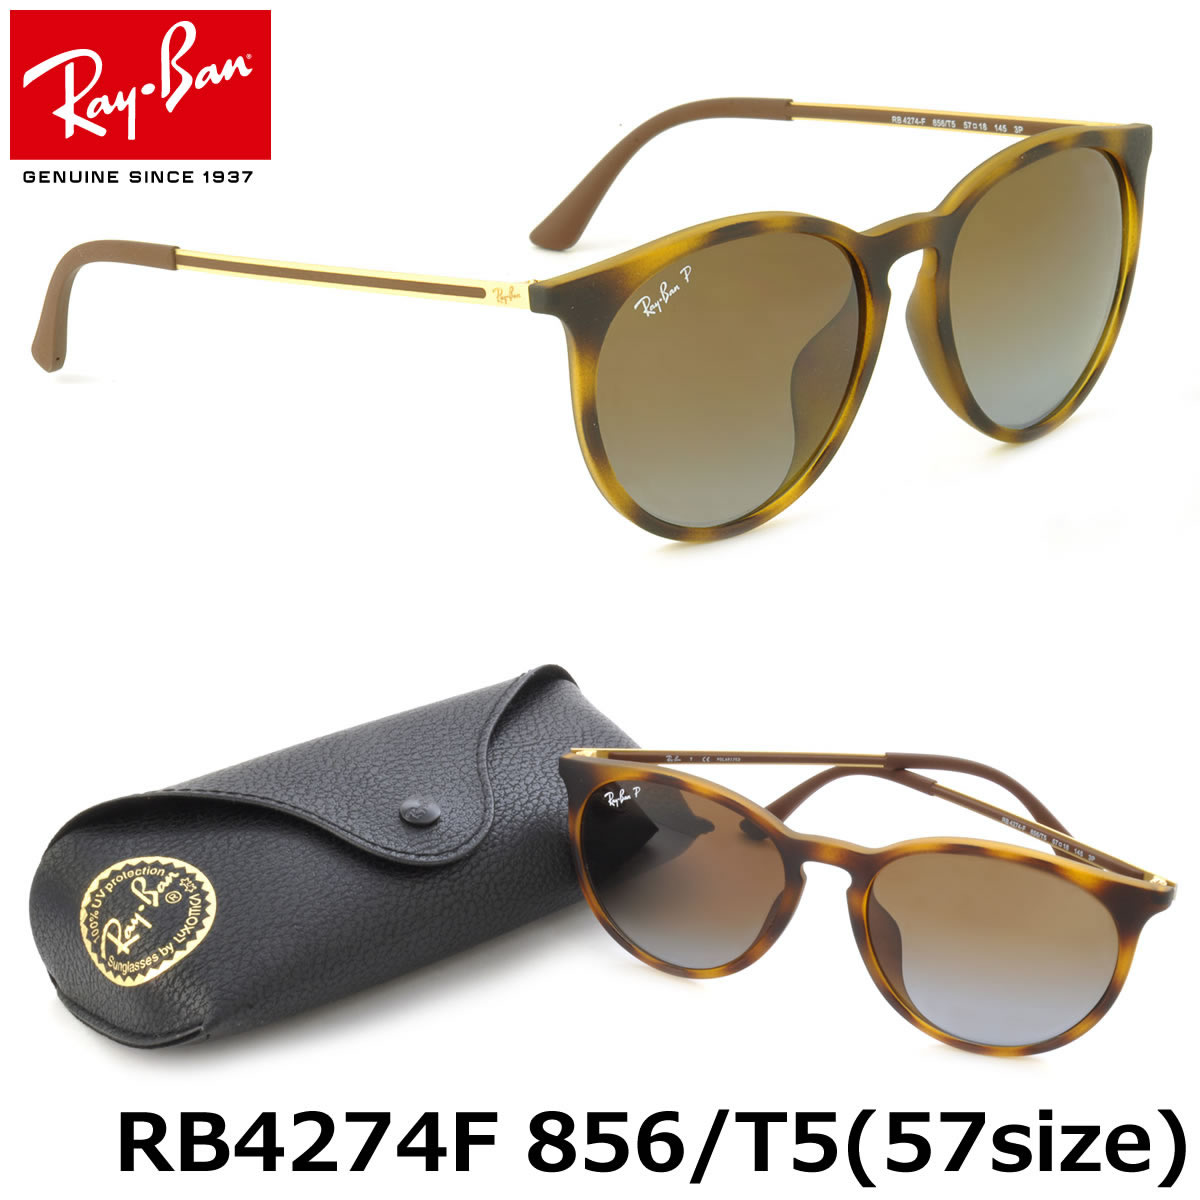 3fe0976a1b5d0 The Boston sunglasses which a big lens shape and a front design are  characterized by. It is classic